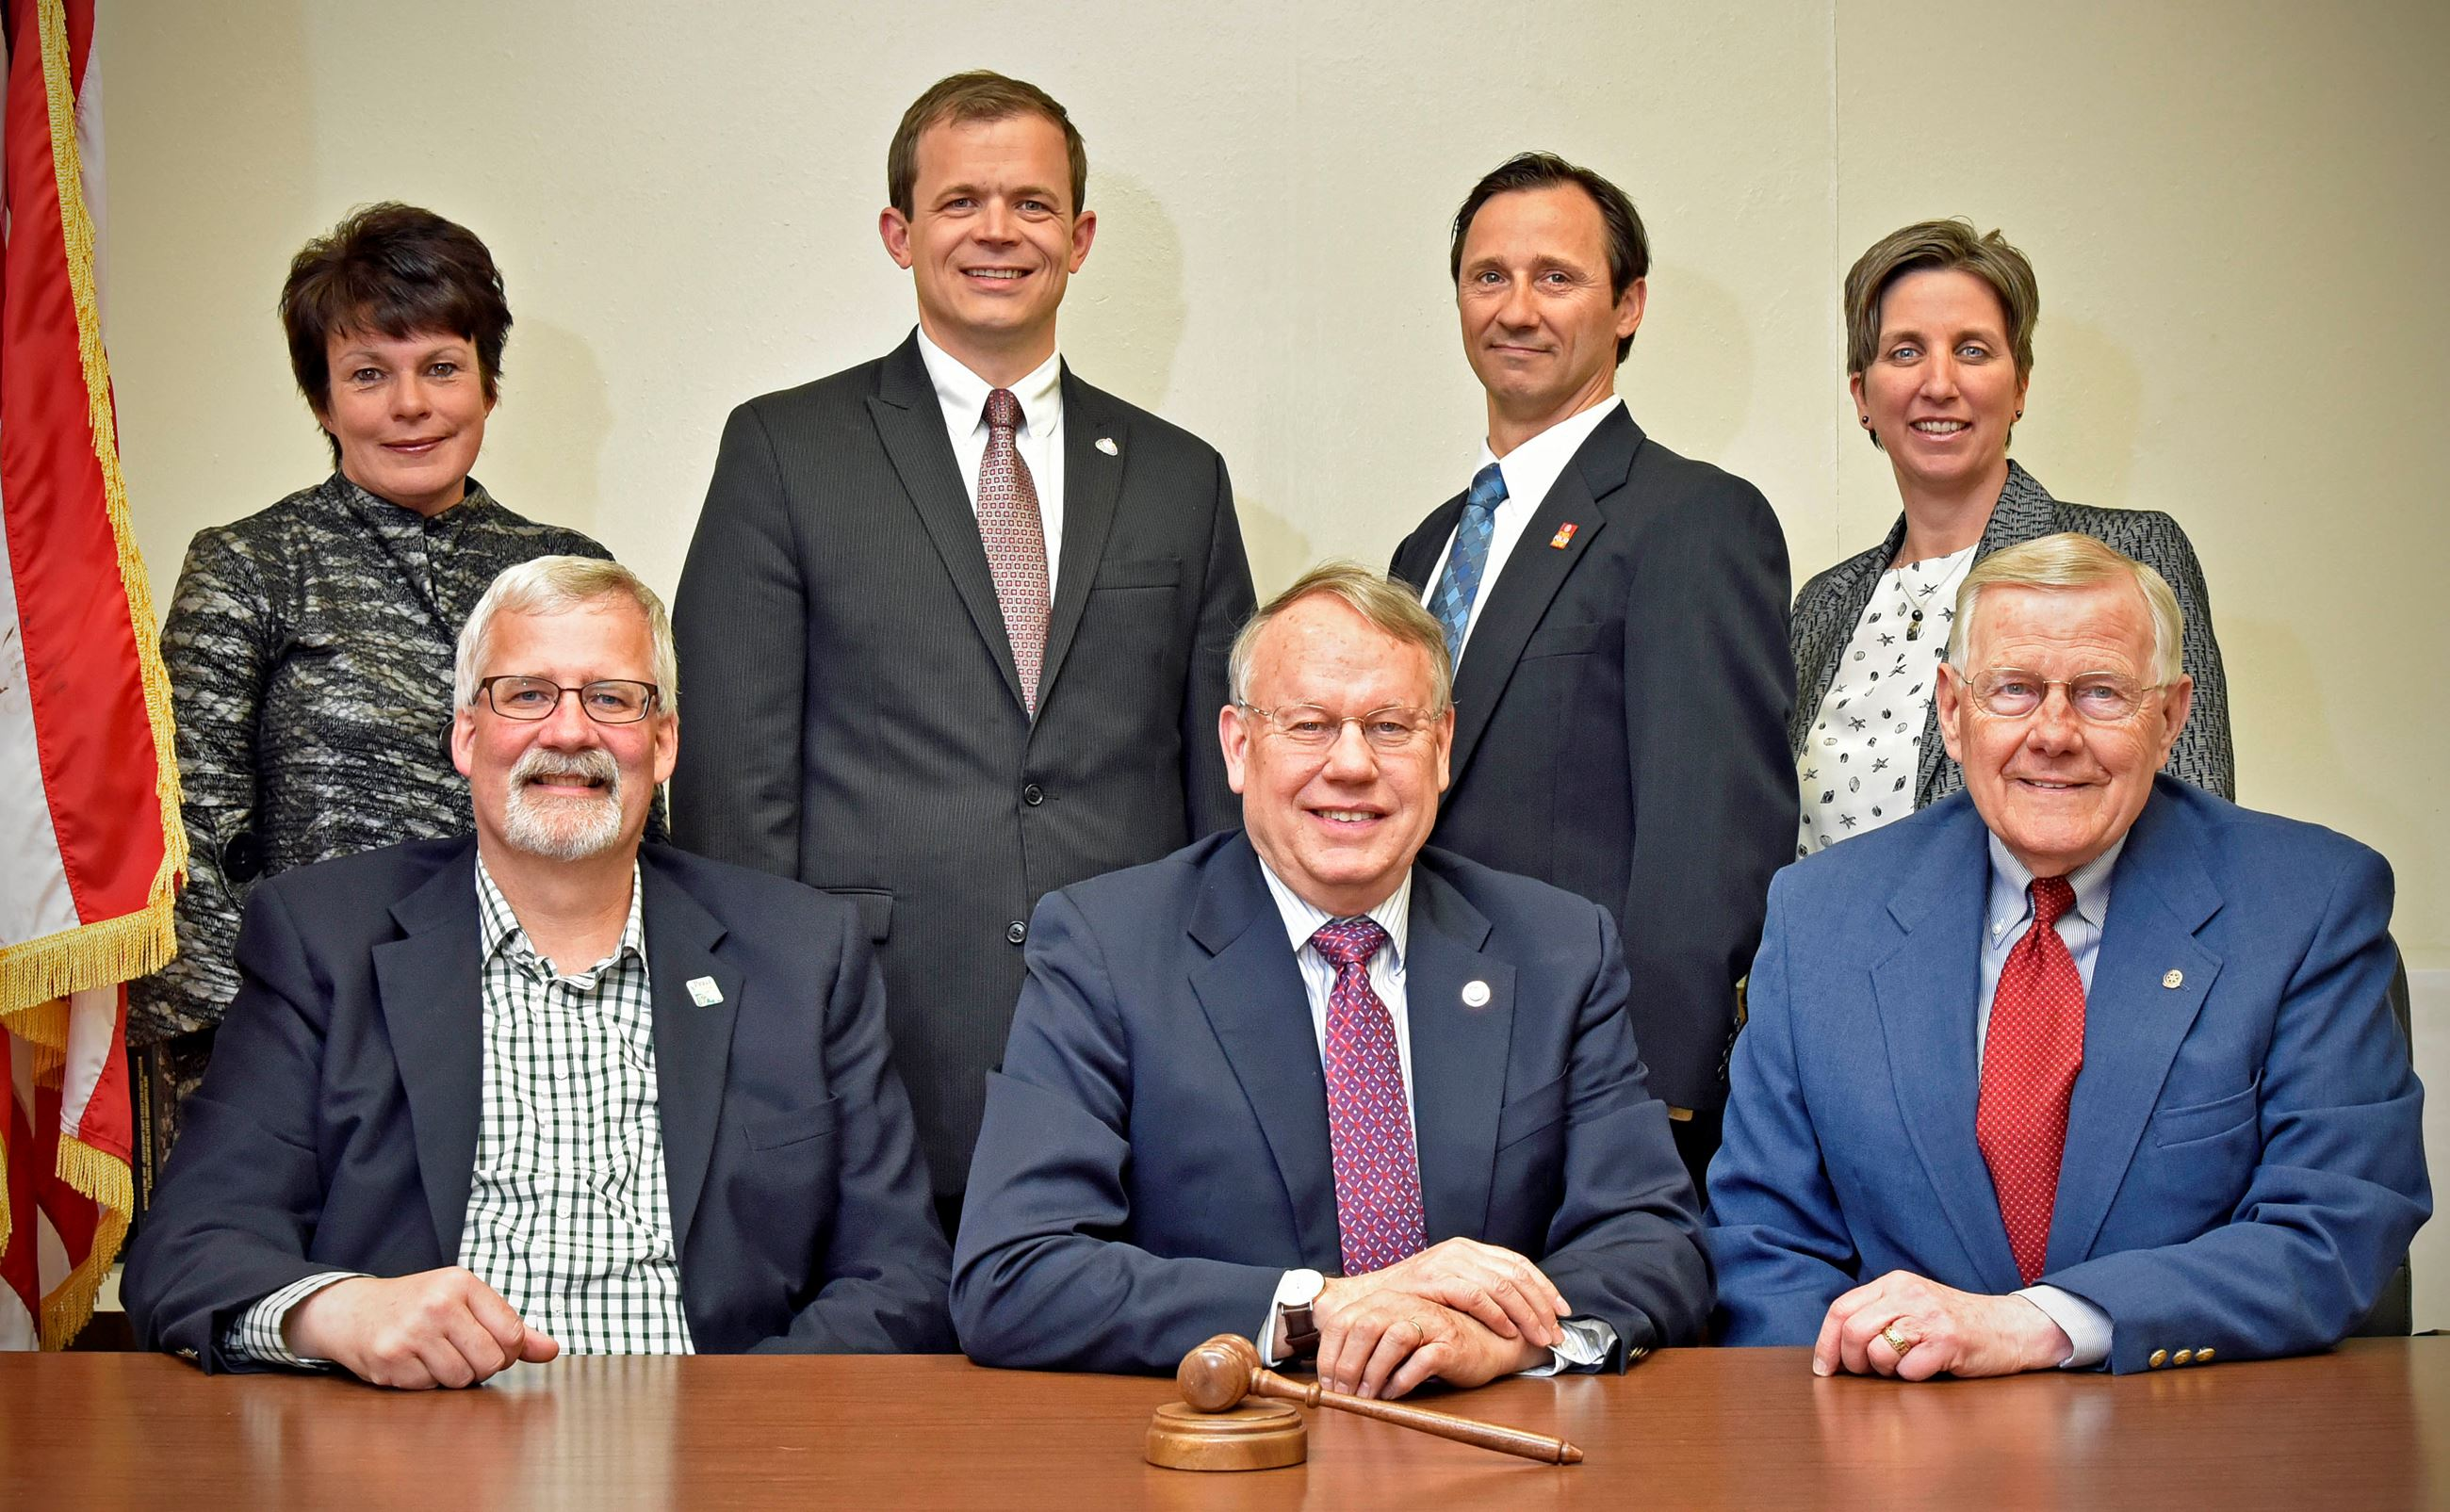 Five men and two women in business attire, with American flag behind them